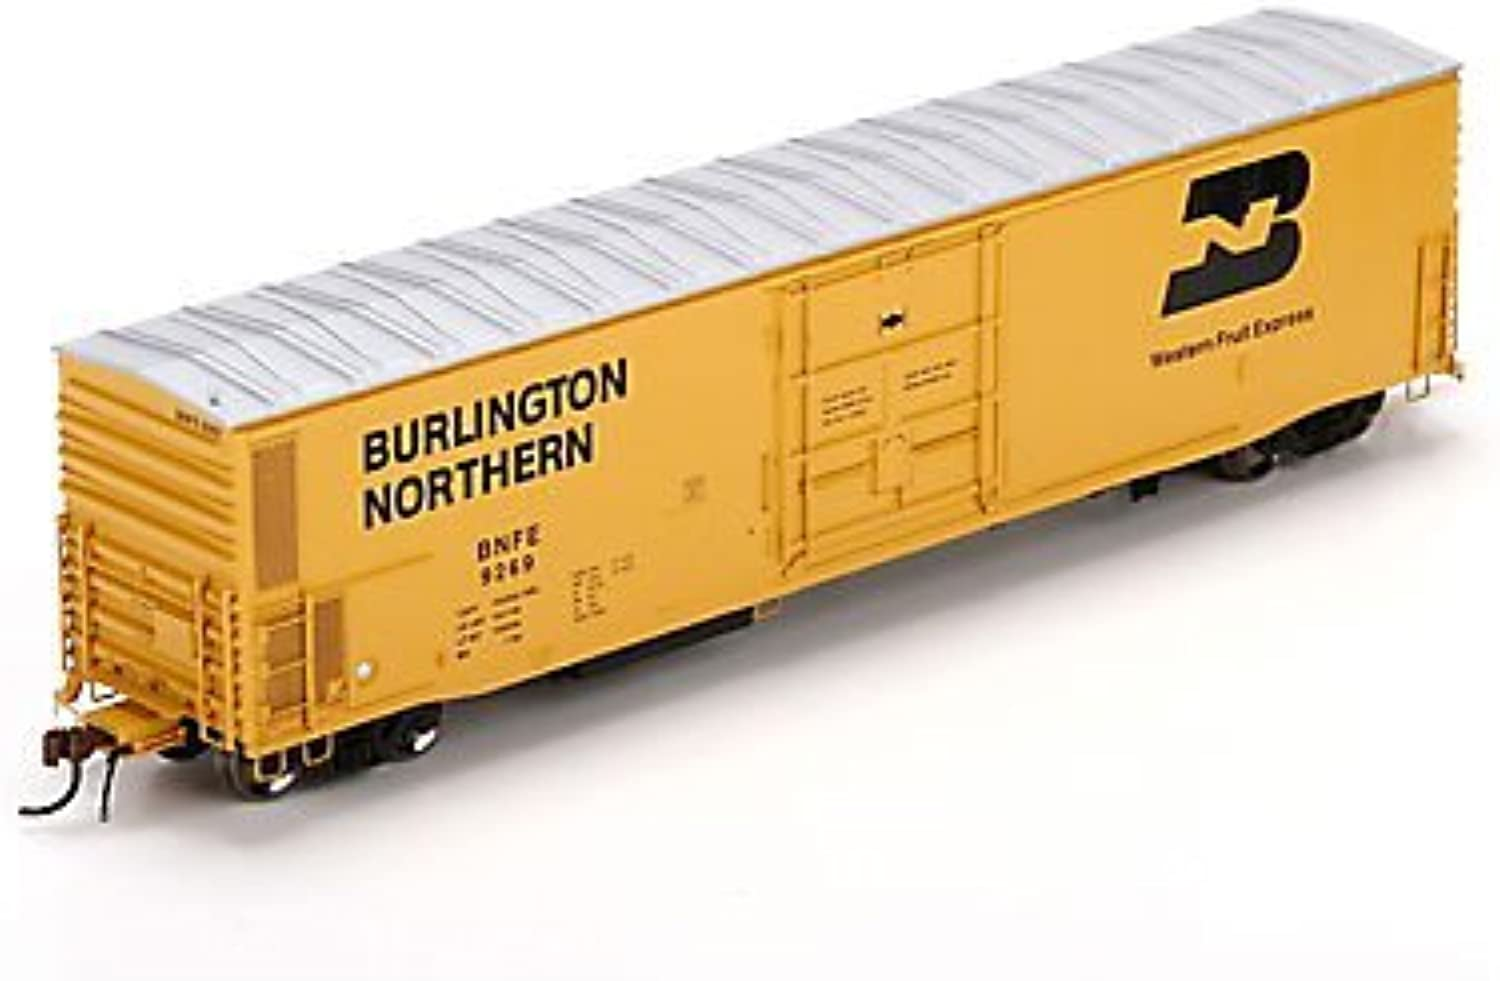 HO 57' Mechanical Reefer, BNFE  9269 by Athearn